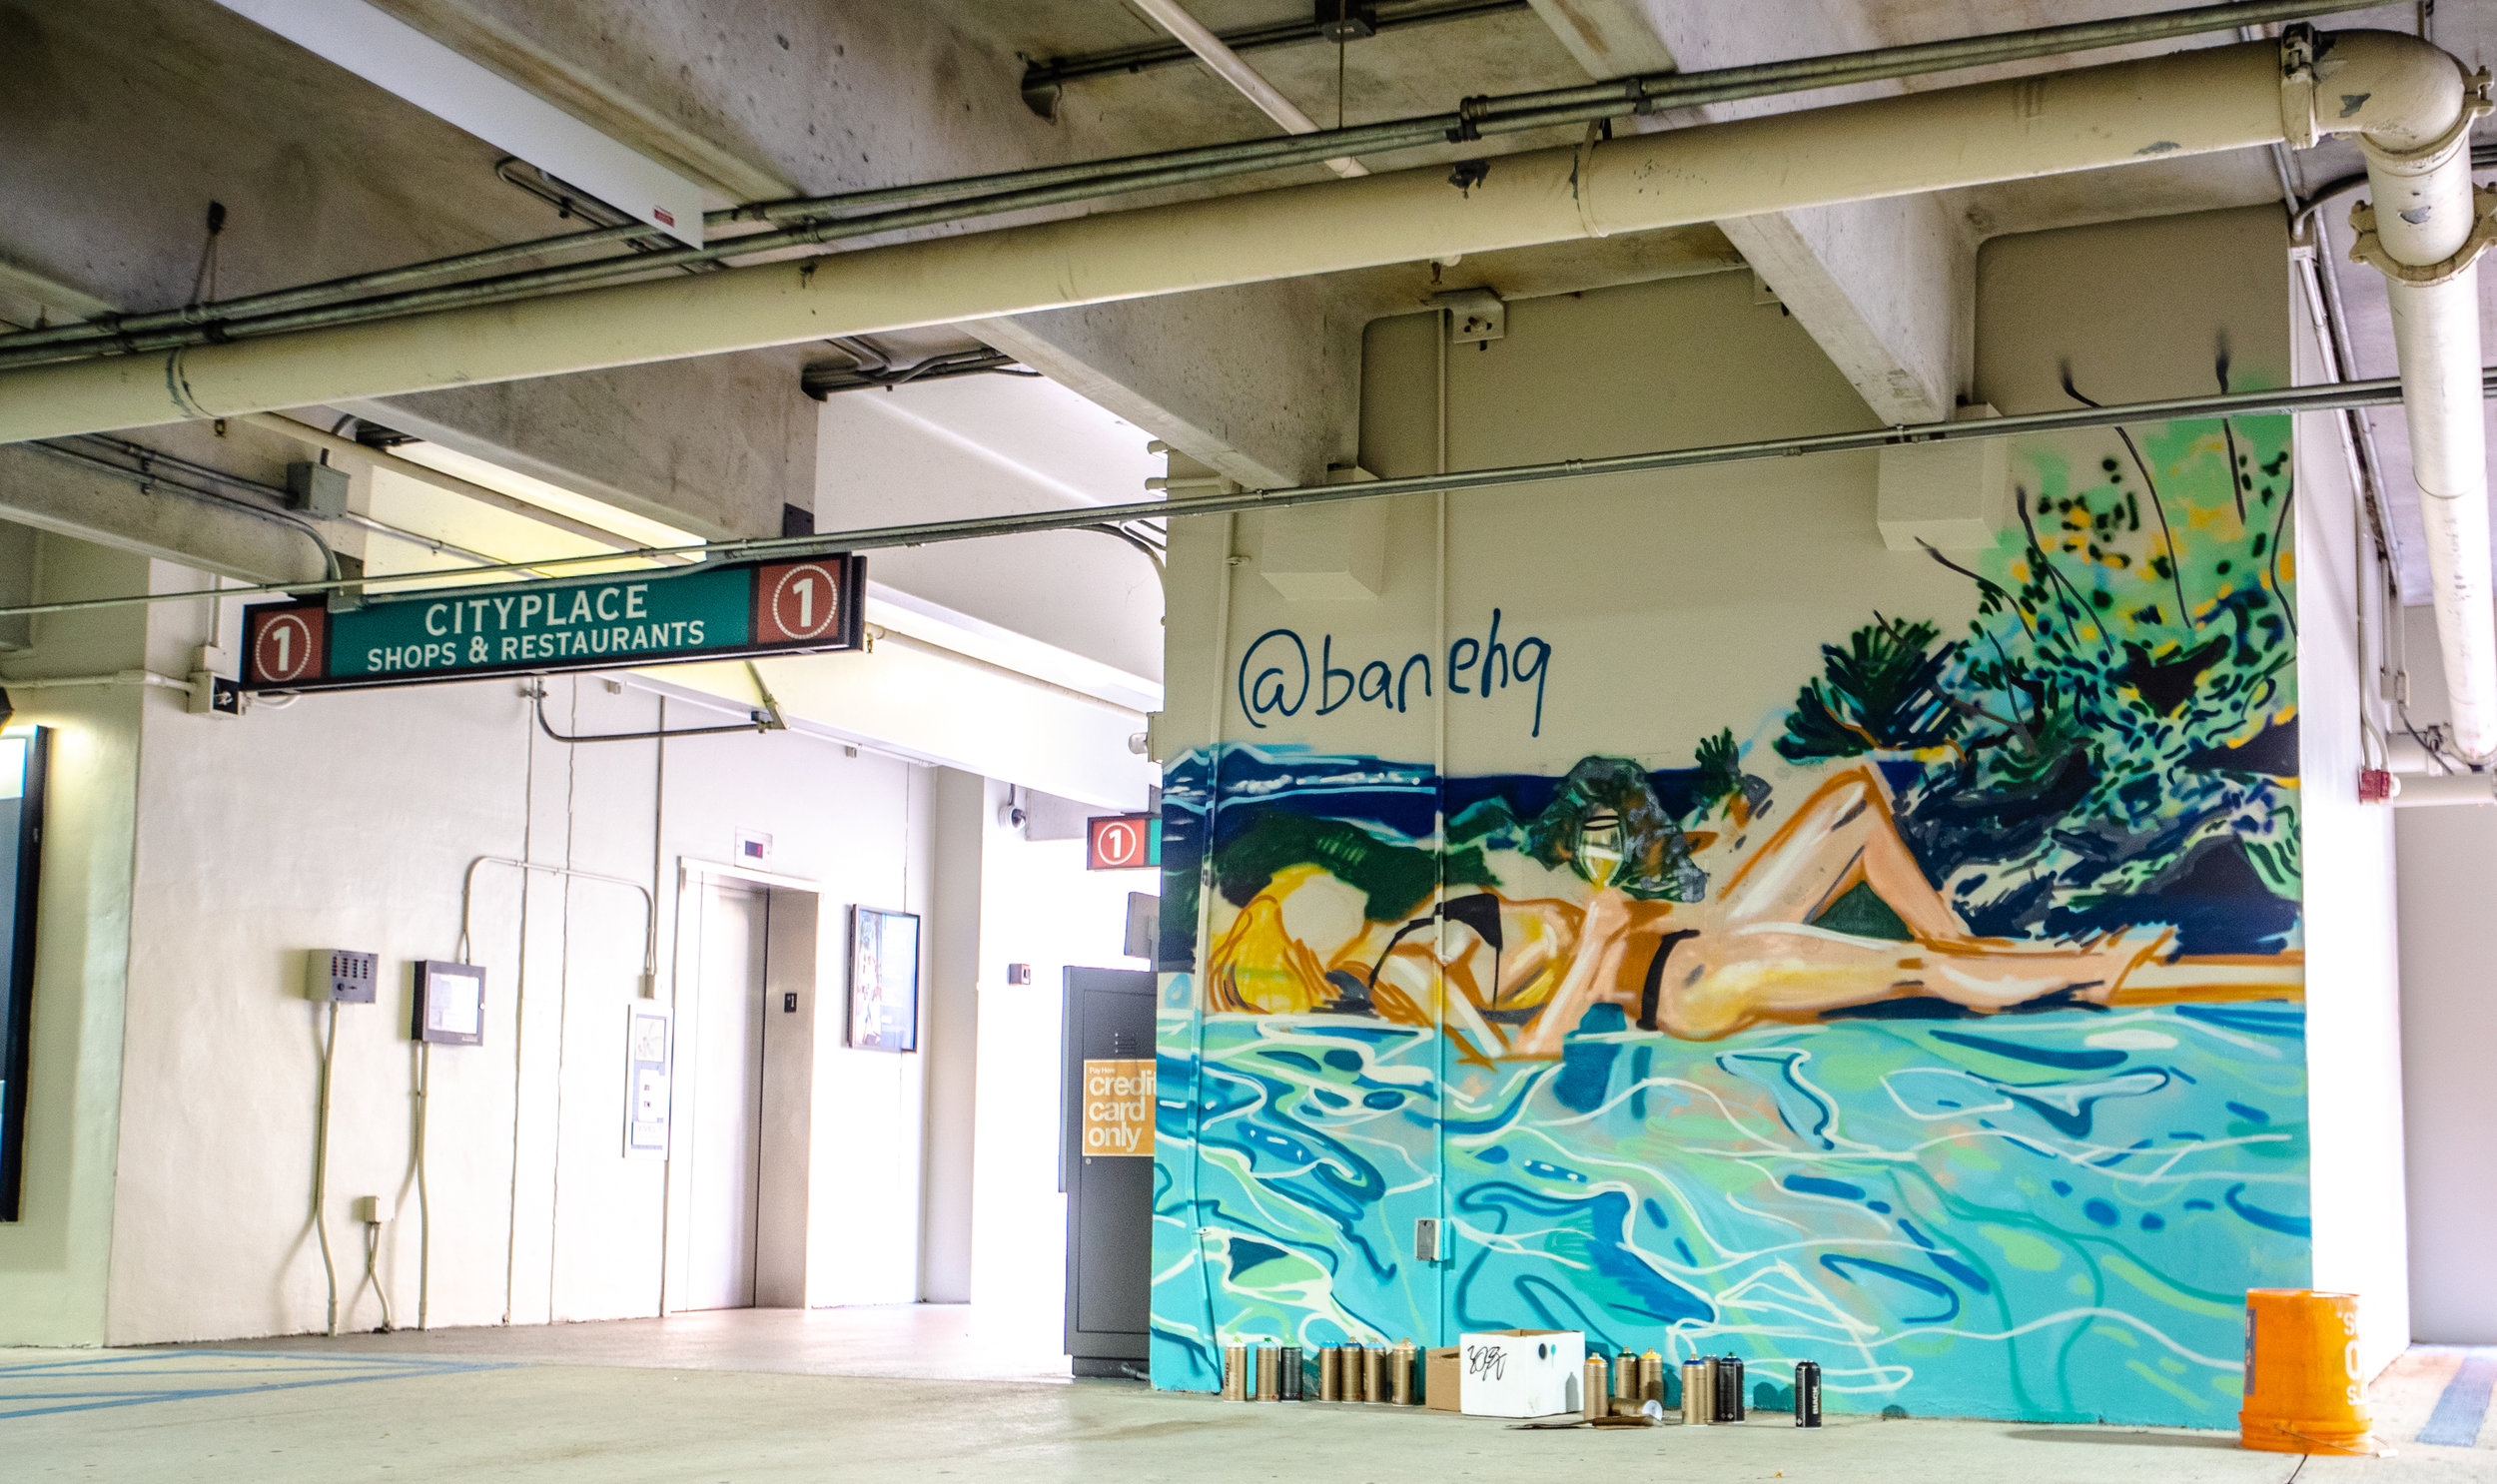 palm betch in her natural environment - BANEA calm relaxing mural meant to capture that one moment of zen we all can enjoy in paradise. Captured by Natasha Rawding while on vacation. But a feeling we all can relate.Location: Sapodilla Garage, ground level